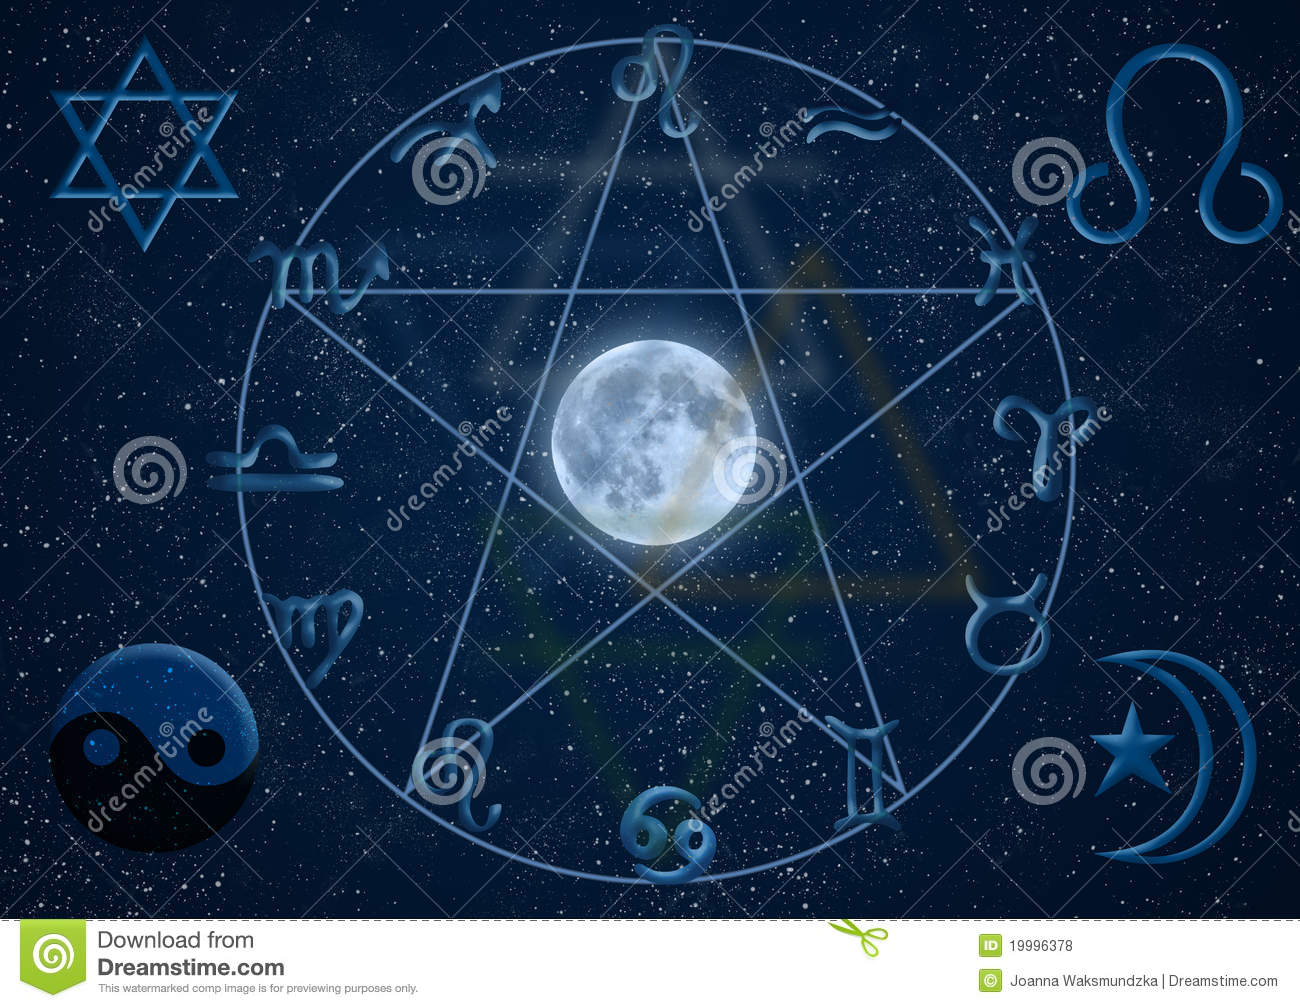 New age symbols on blue background including astrology chart.